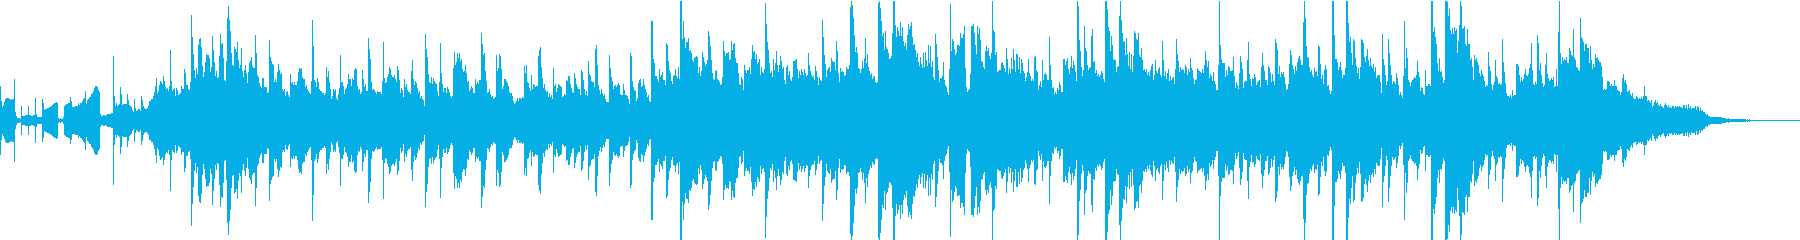 A very light and ...'s reproduced waveform